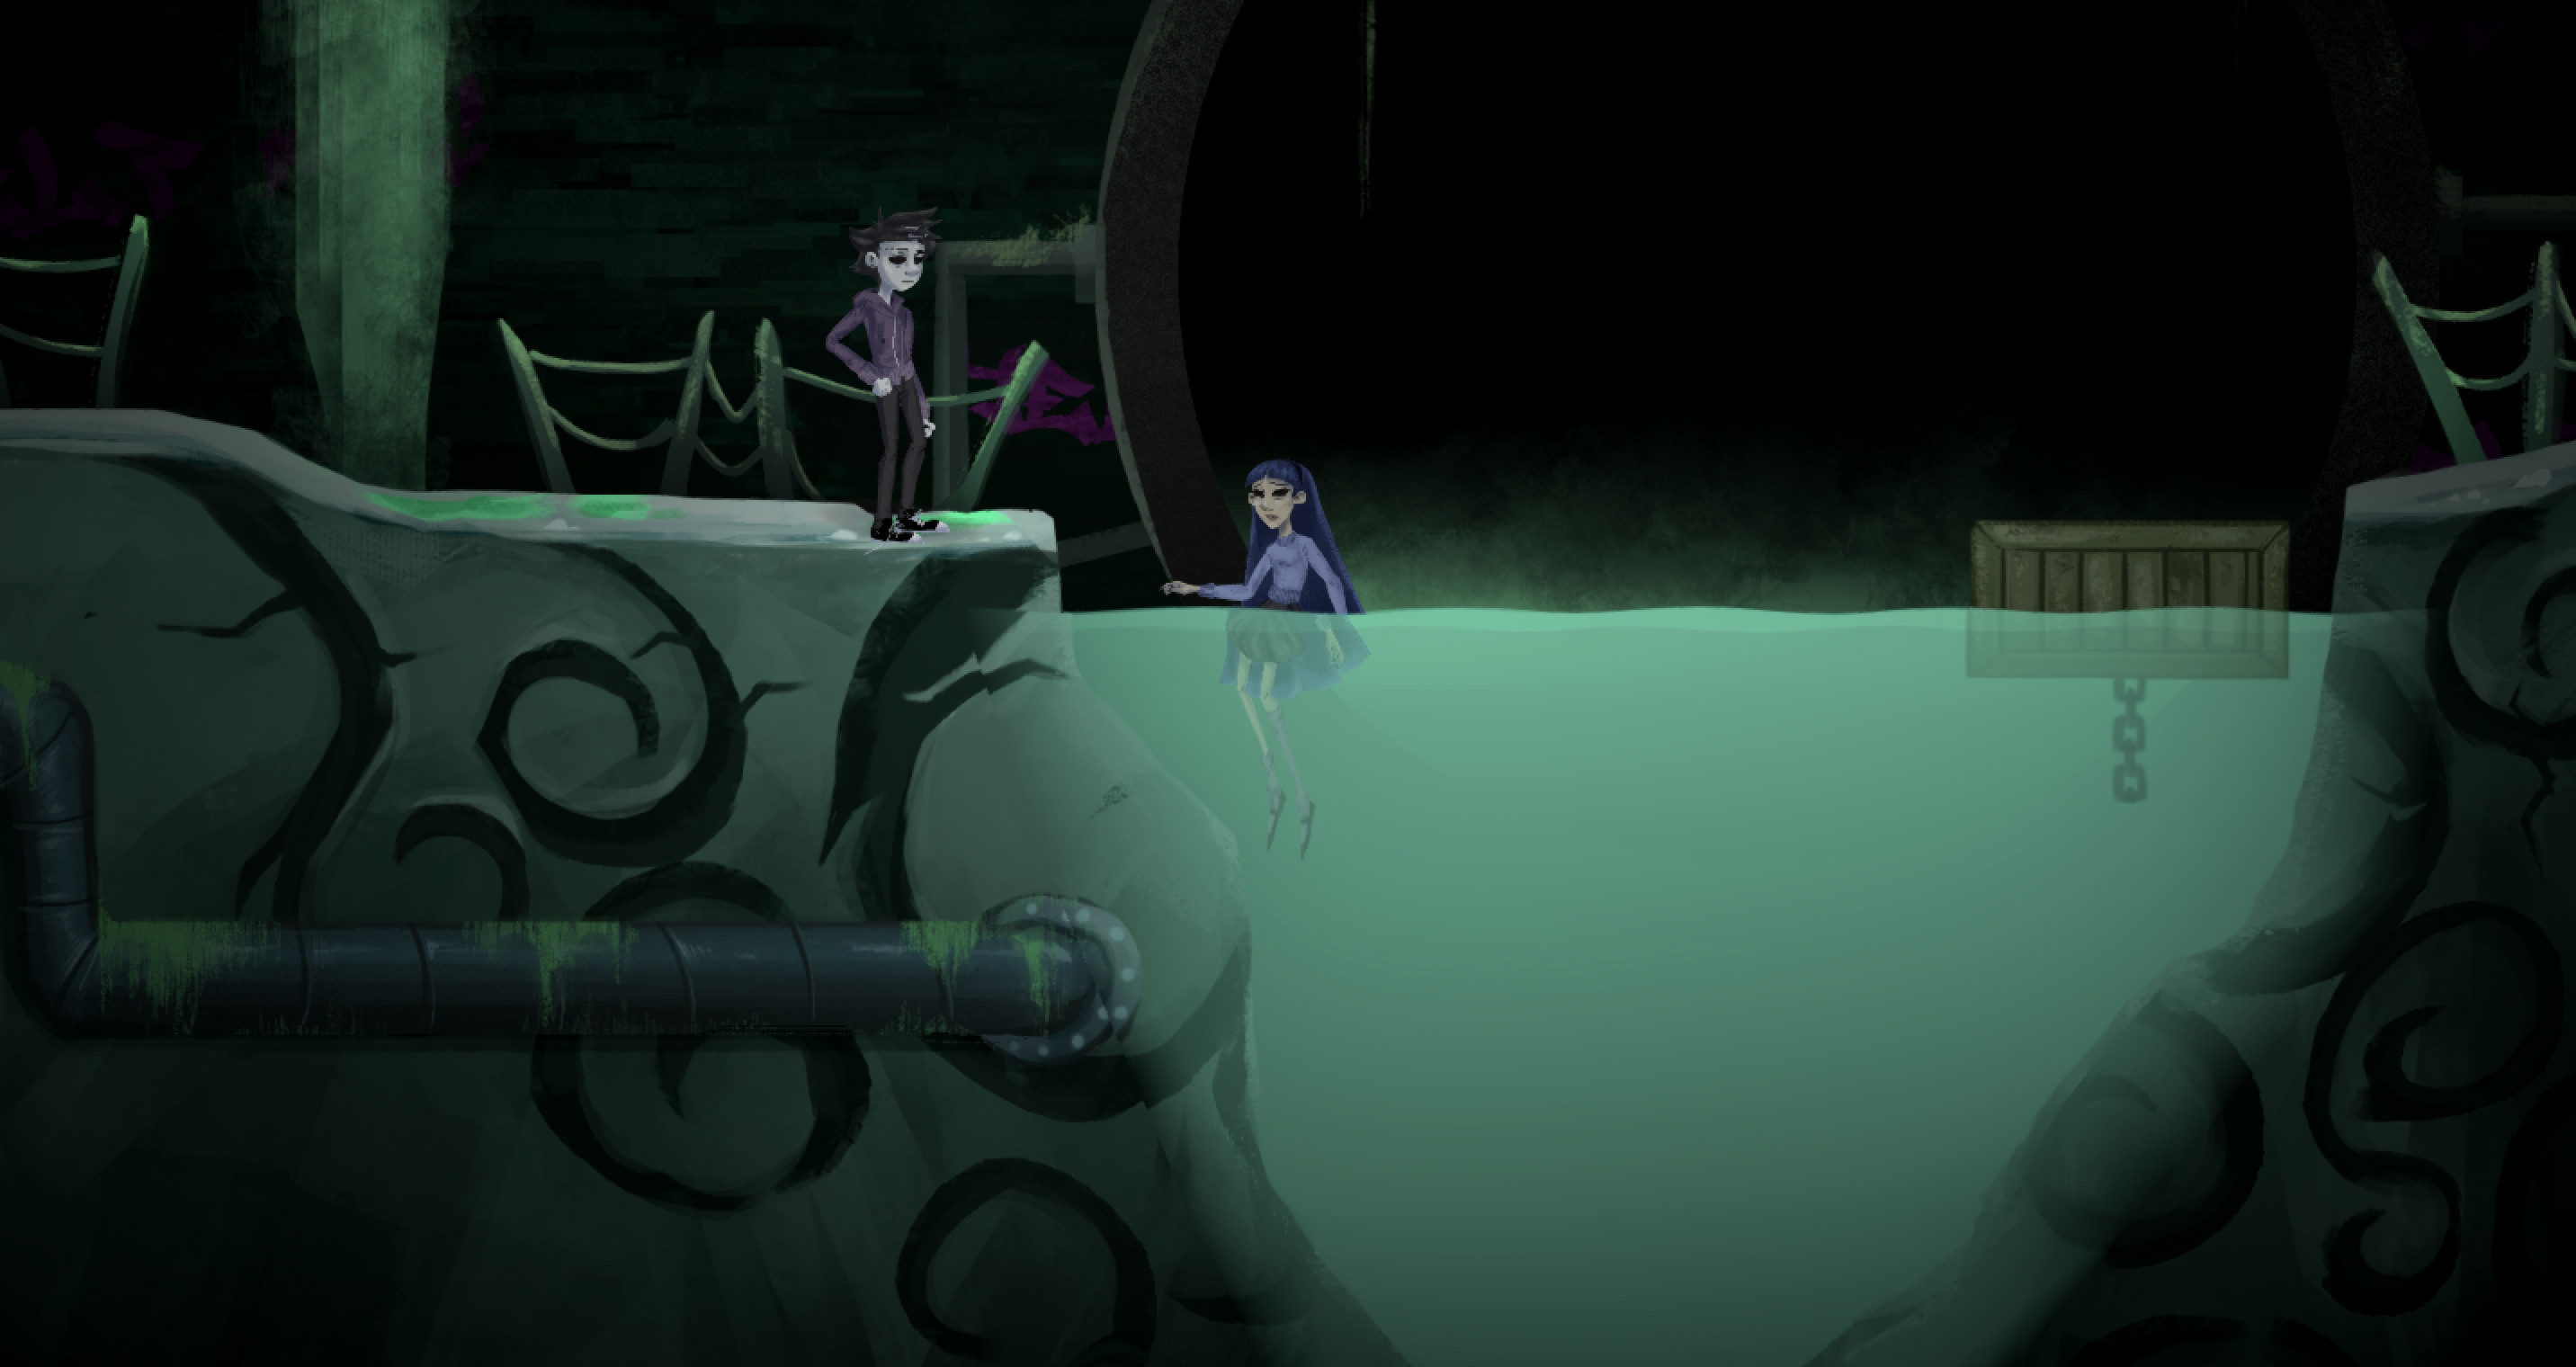 In-game Screenshot #2 – Sewer area where Deadboy first encounters Drowned Girl.